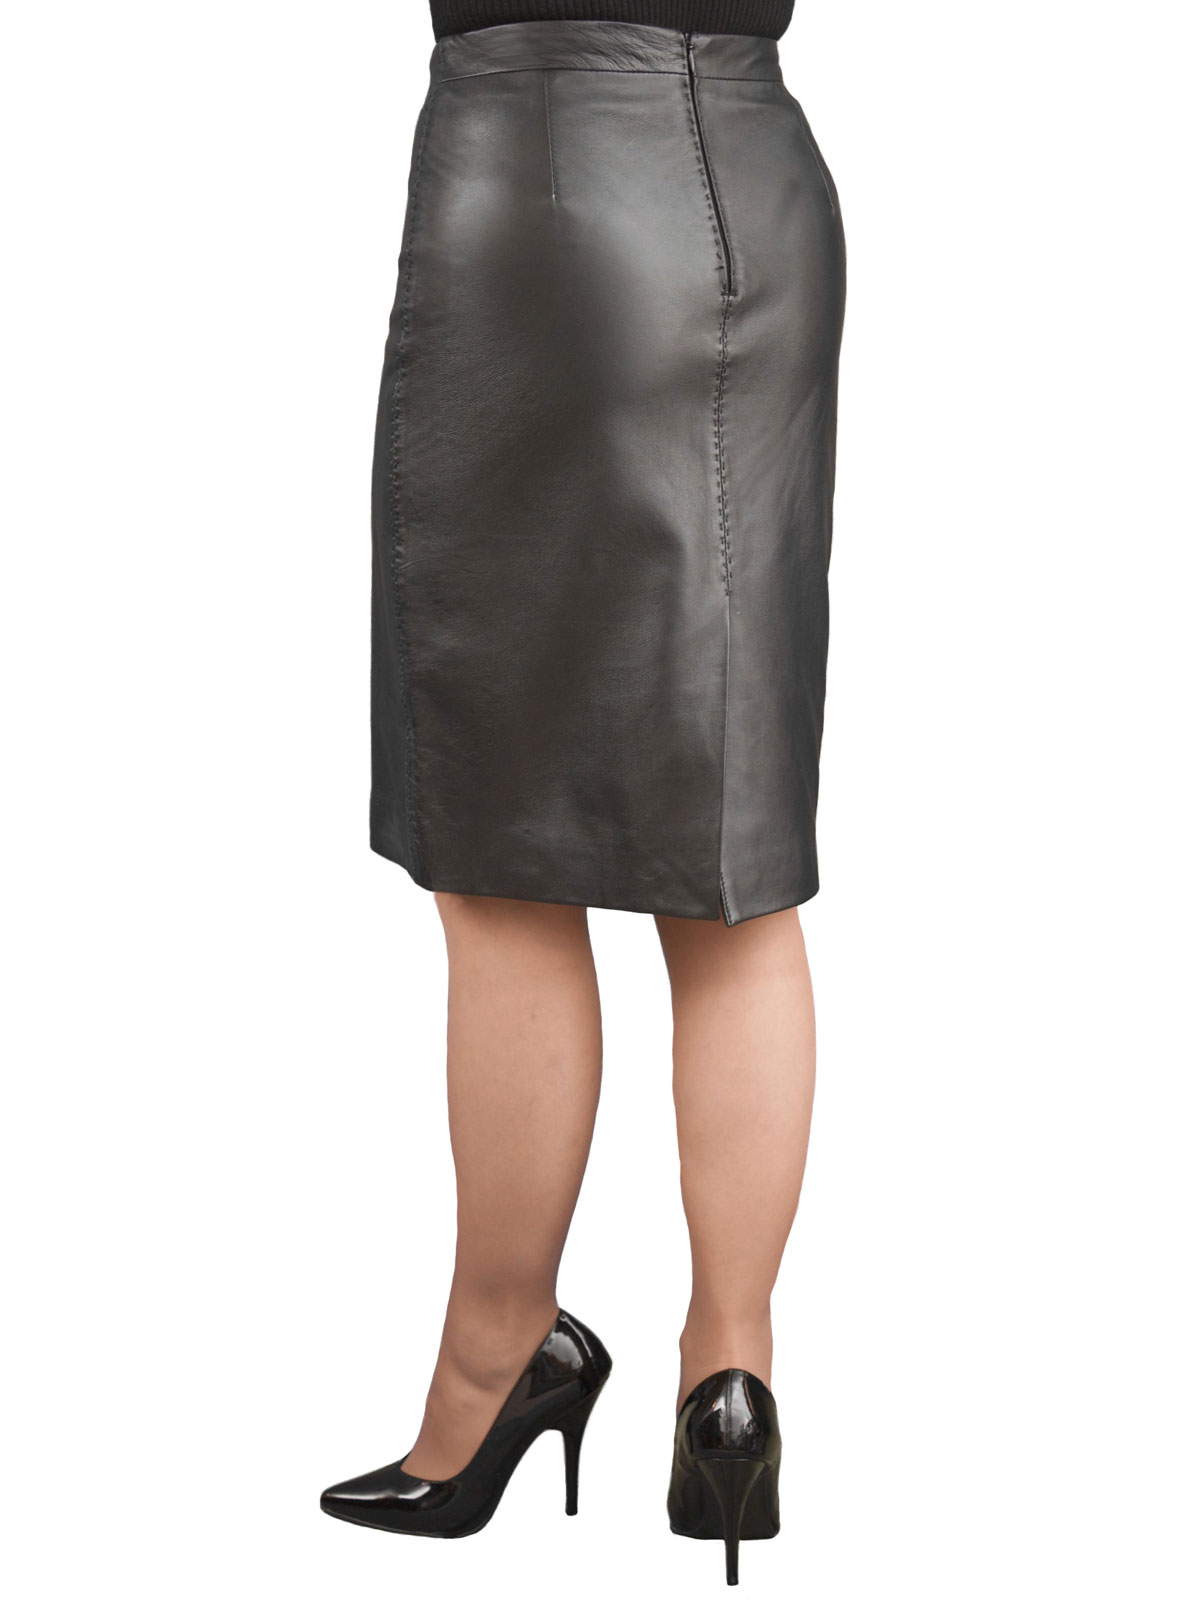 Leather Skirts Uk - Dress Ala